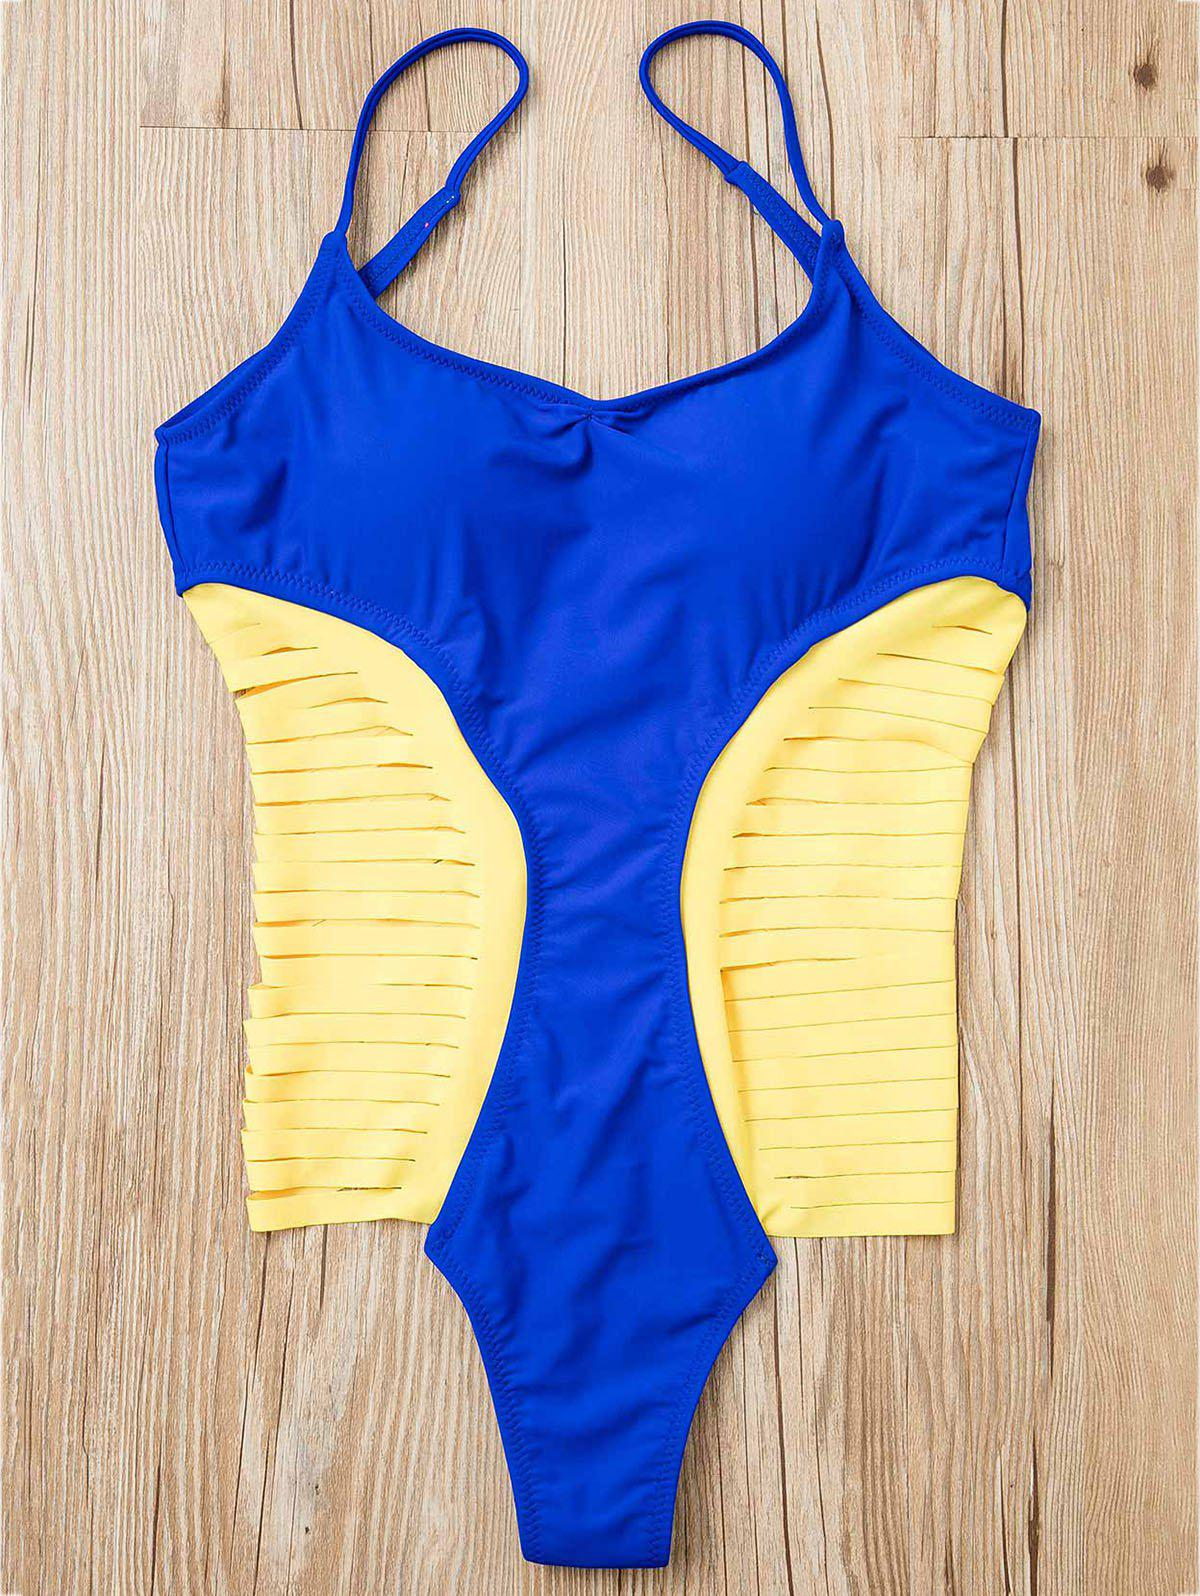 Chic Women's Spaghetti Strap Strappy Hollow Out One-Piece Swimsuit - BLUE M